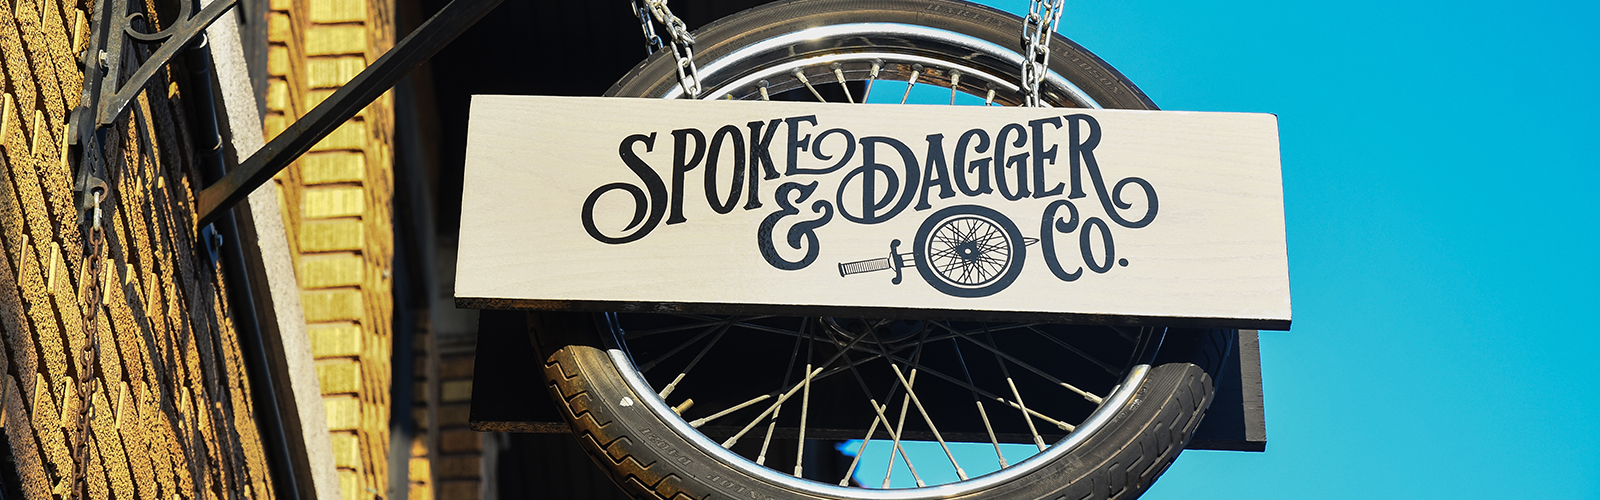 Spoke & Dagger Co., located at 1434 Hertel Ave., Buffalo, is identifiable by its swinging tire sign. <span class=&apos;image-credits&apos;>Jessica Brant</span>